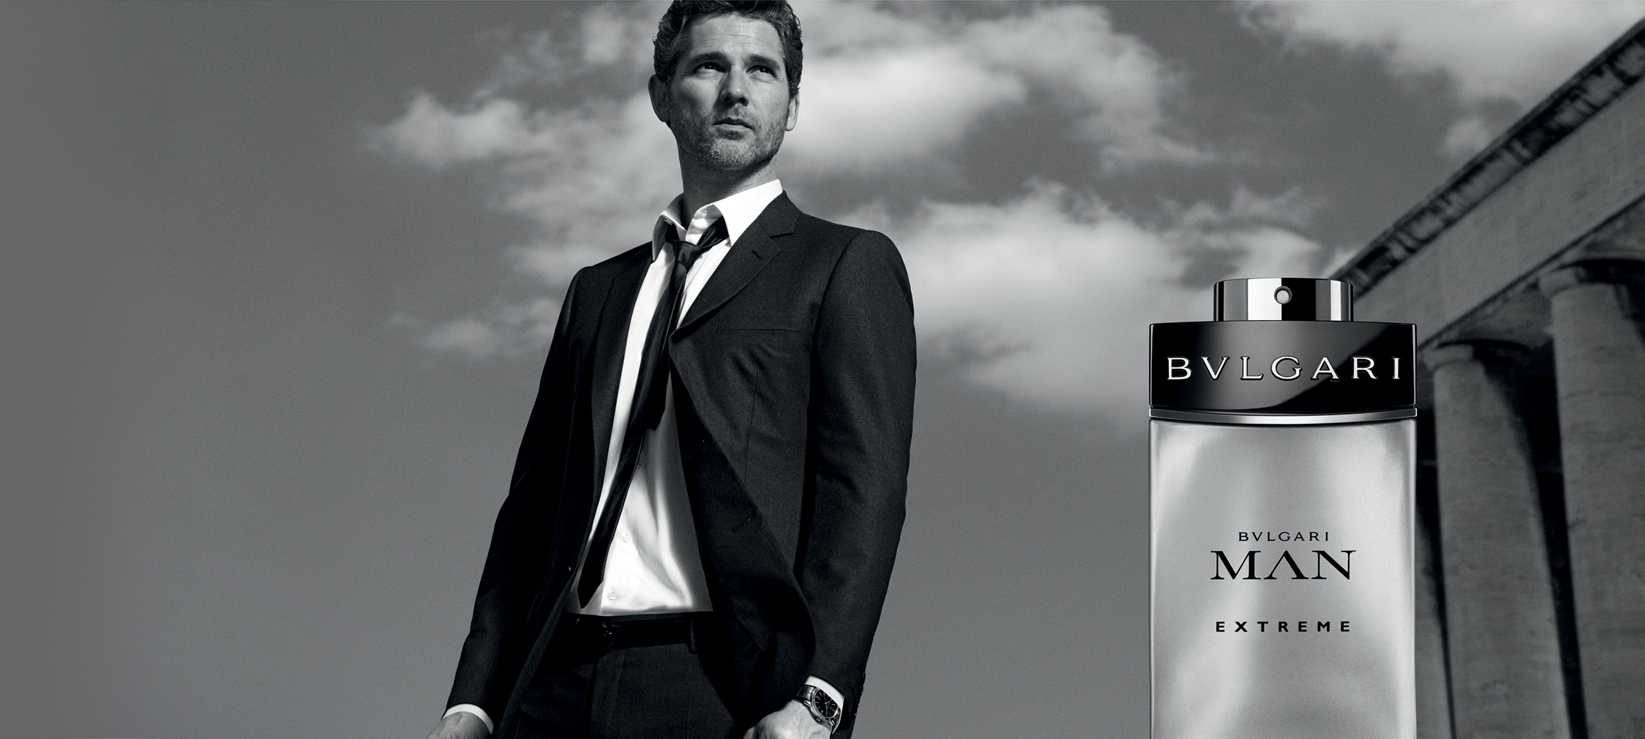 Bvlgari_Man_Extreme_Fragrance_Review